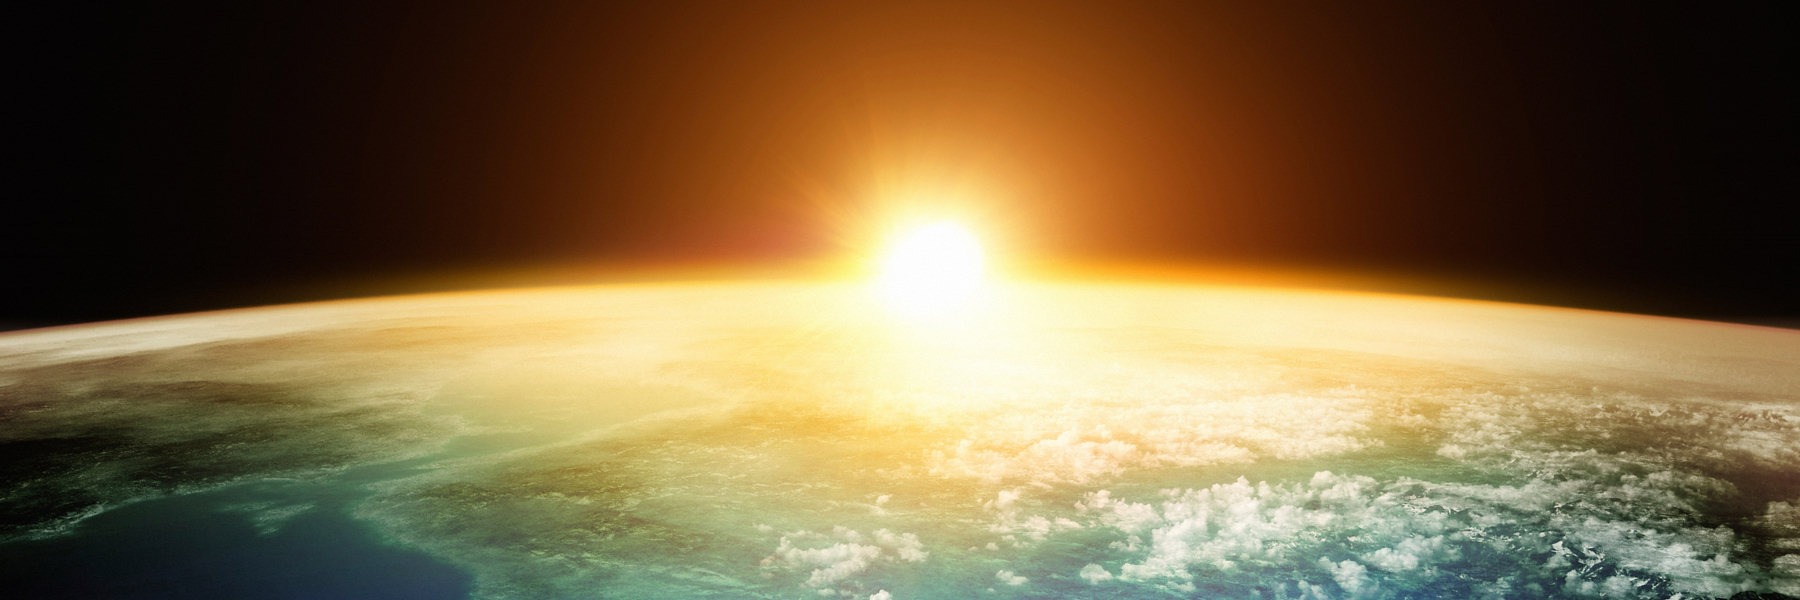 Banner Image - Yellow sun peeking out from earth